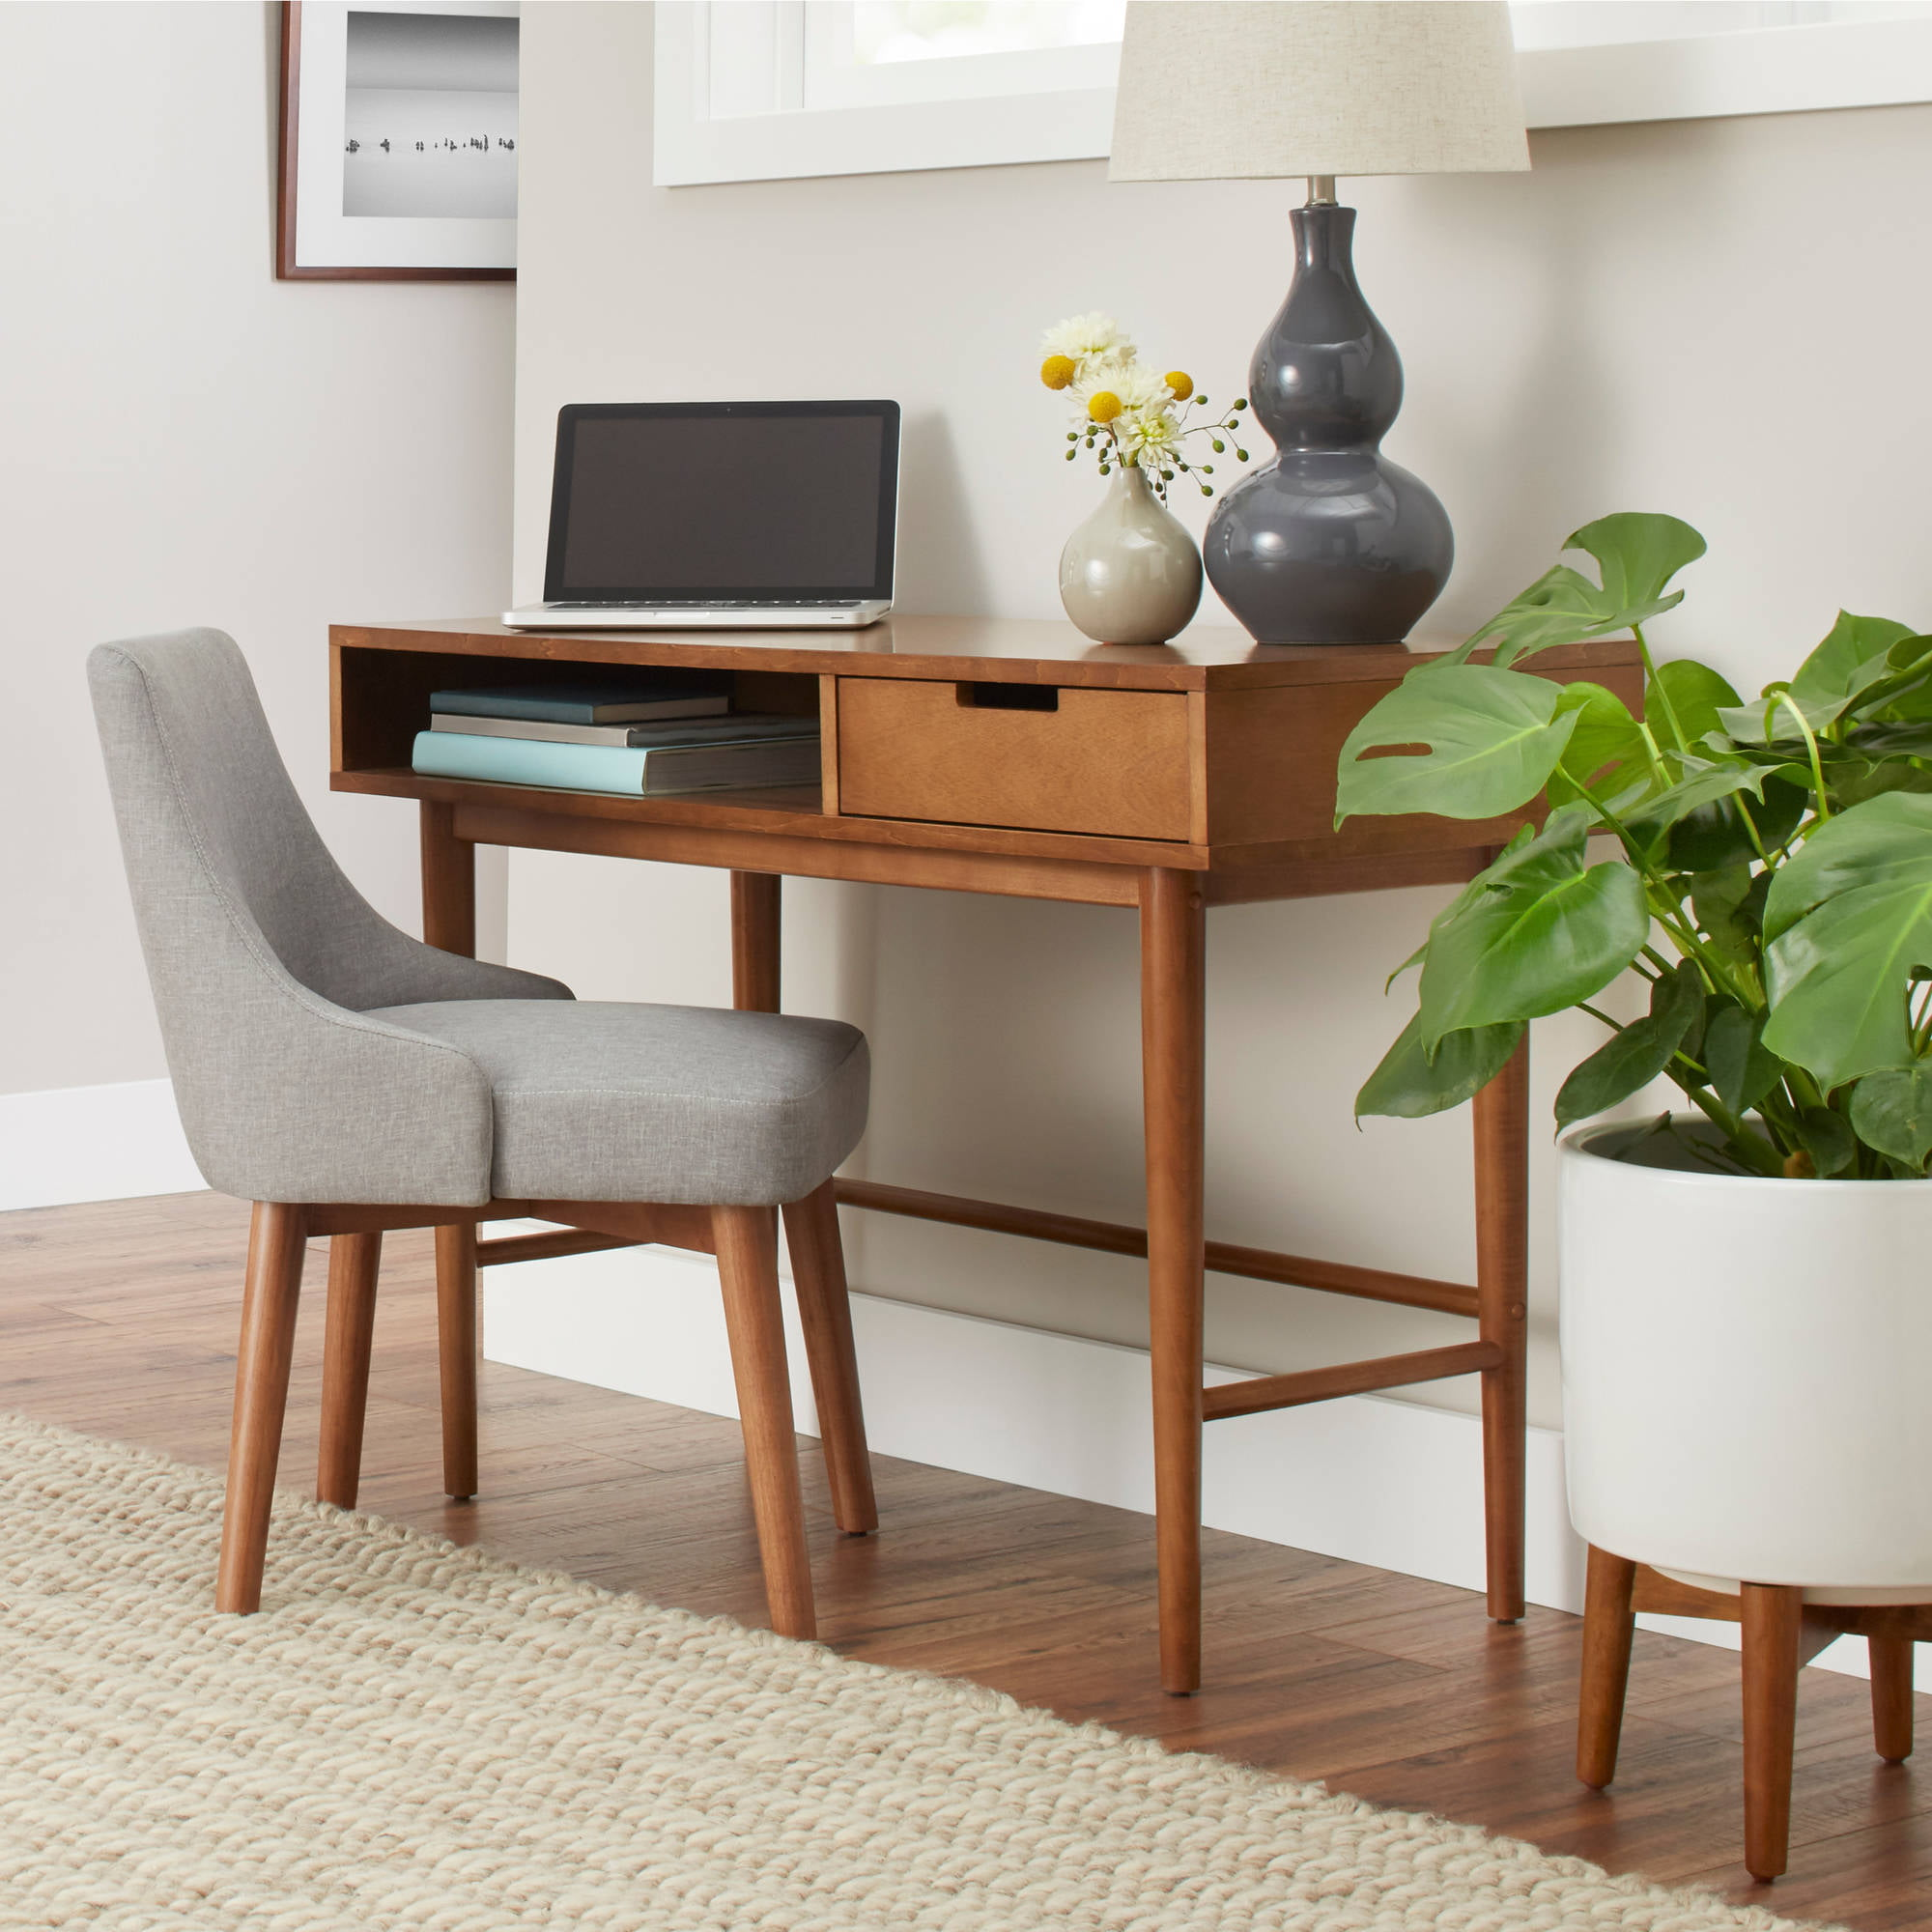 Better Homes & Gardens Flynn Mid Century Modern Desk, Multiple Colors -  Walmart.com